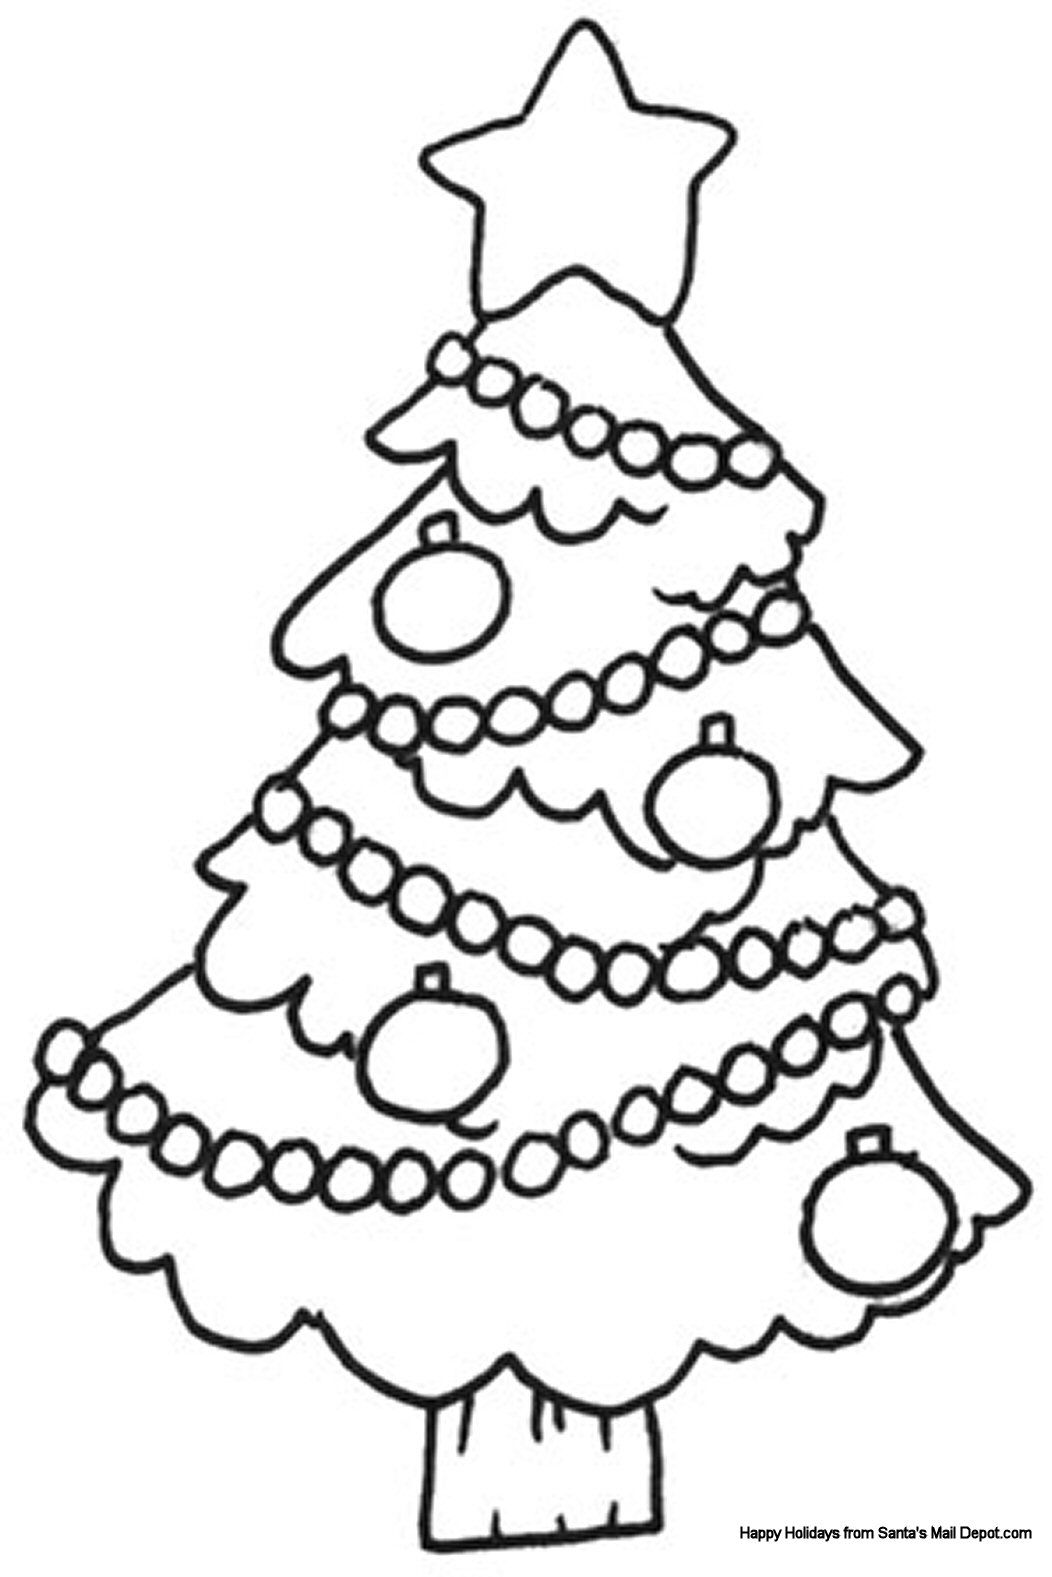 Free online holiday coloring pages - Christmas Colouring Sheet Free Online Printable Coloring Pages Sheets For Kids Get The Latest Free Christmas Colouring Sheet Images Favorite Coloring